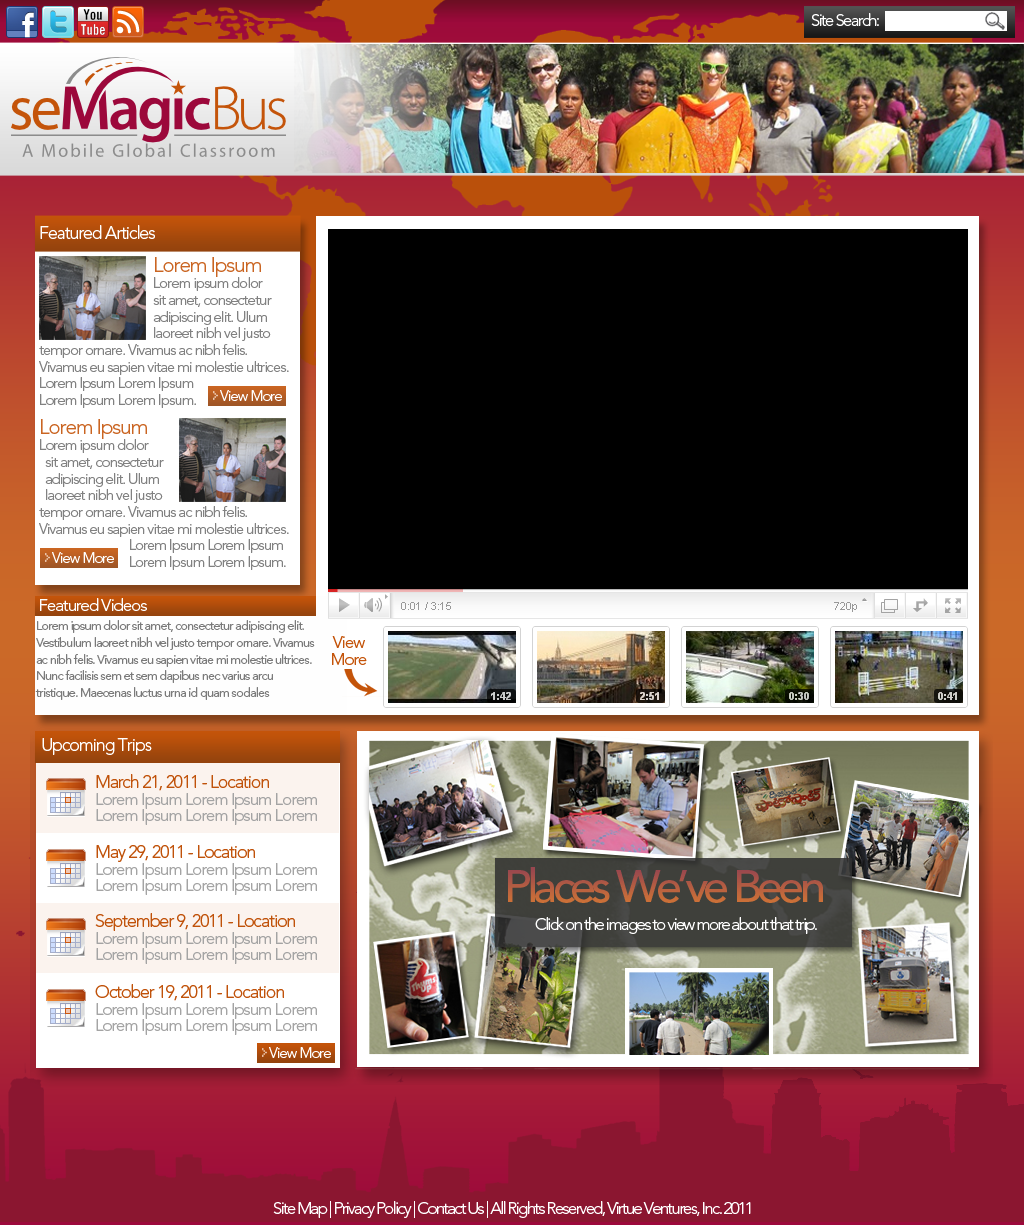 Web Page Design by bambino - Entry No. 48 in the Web Page Design Contest seMagicBus Website.